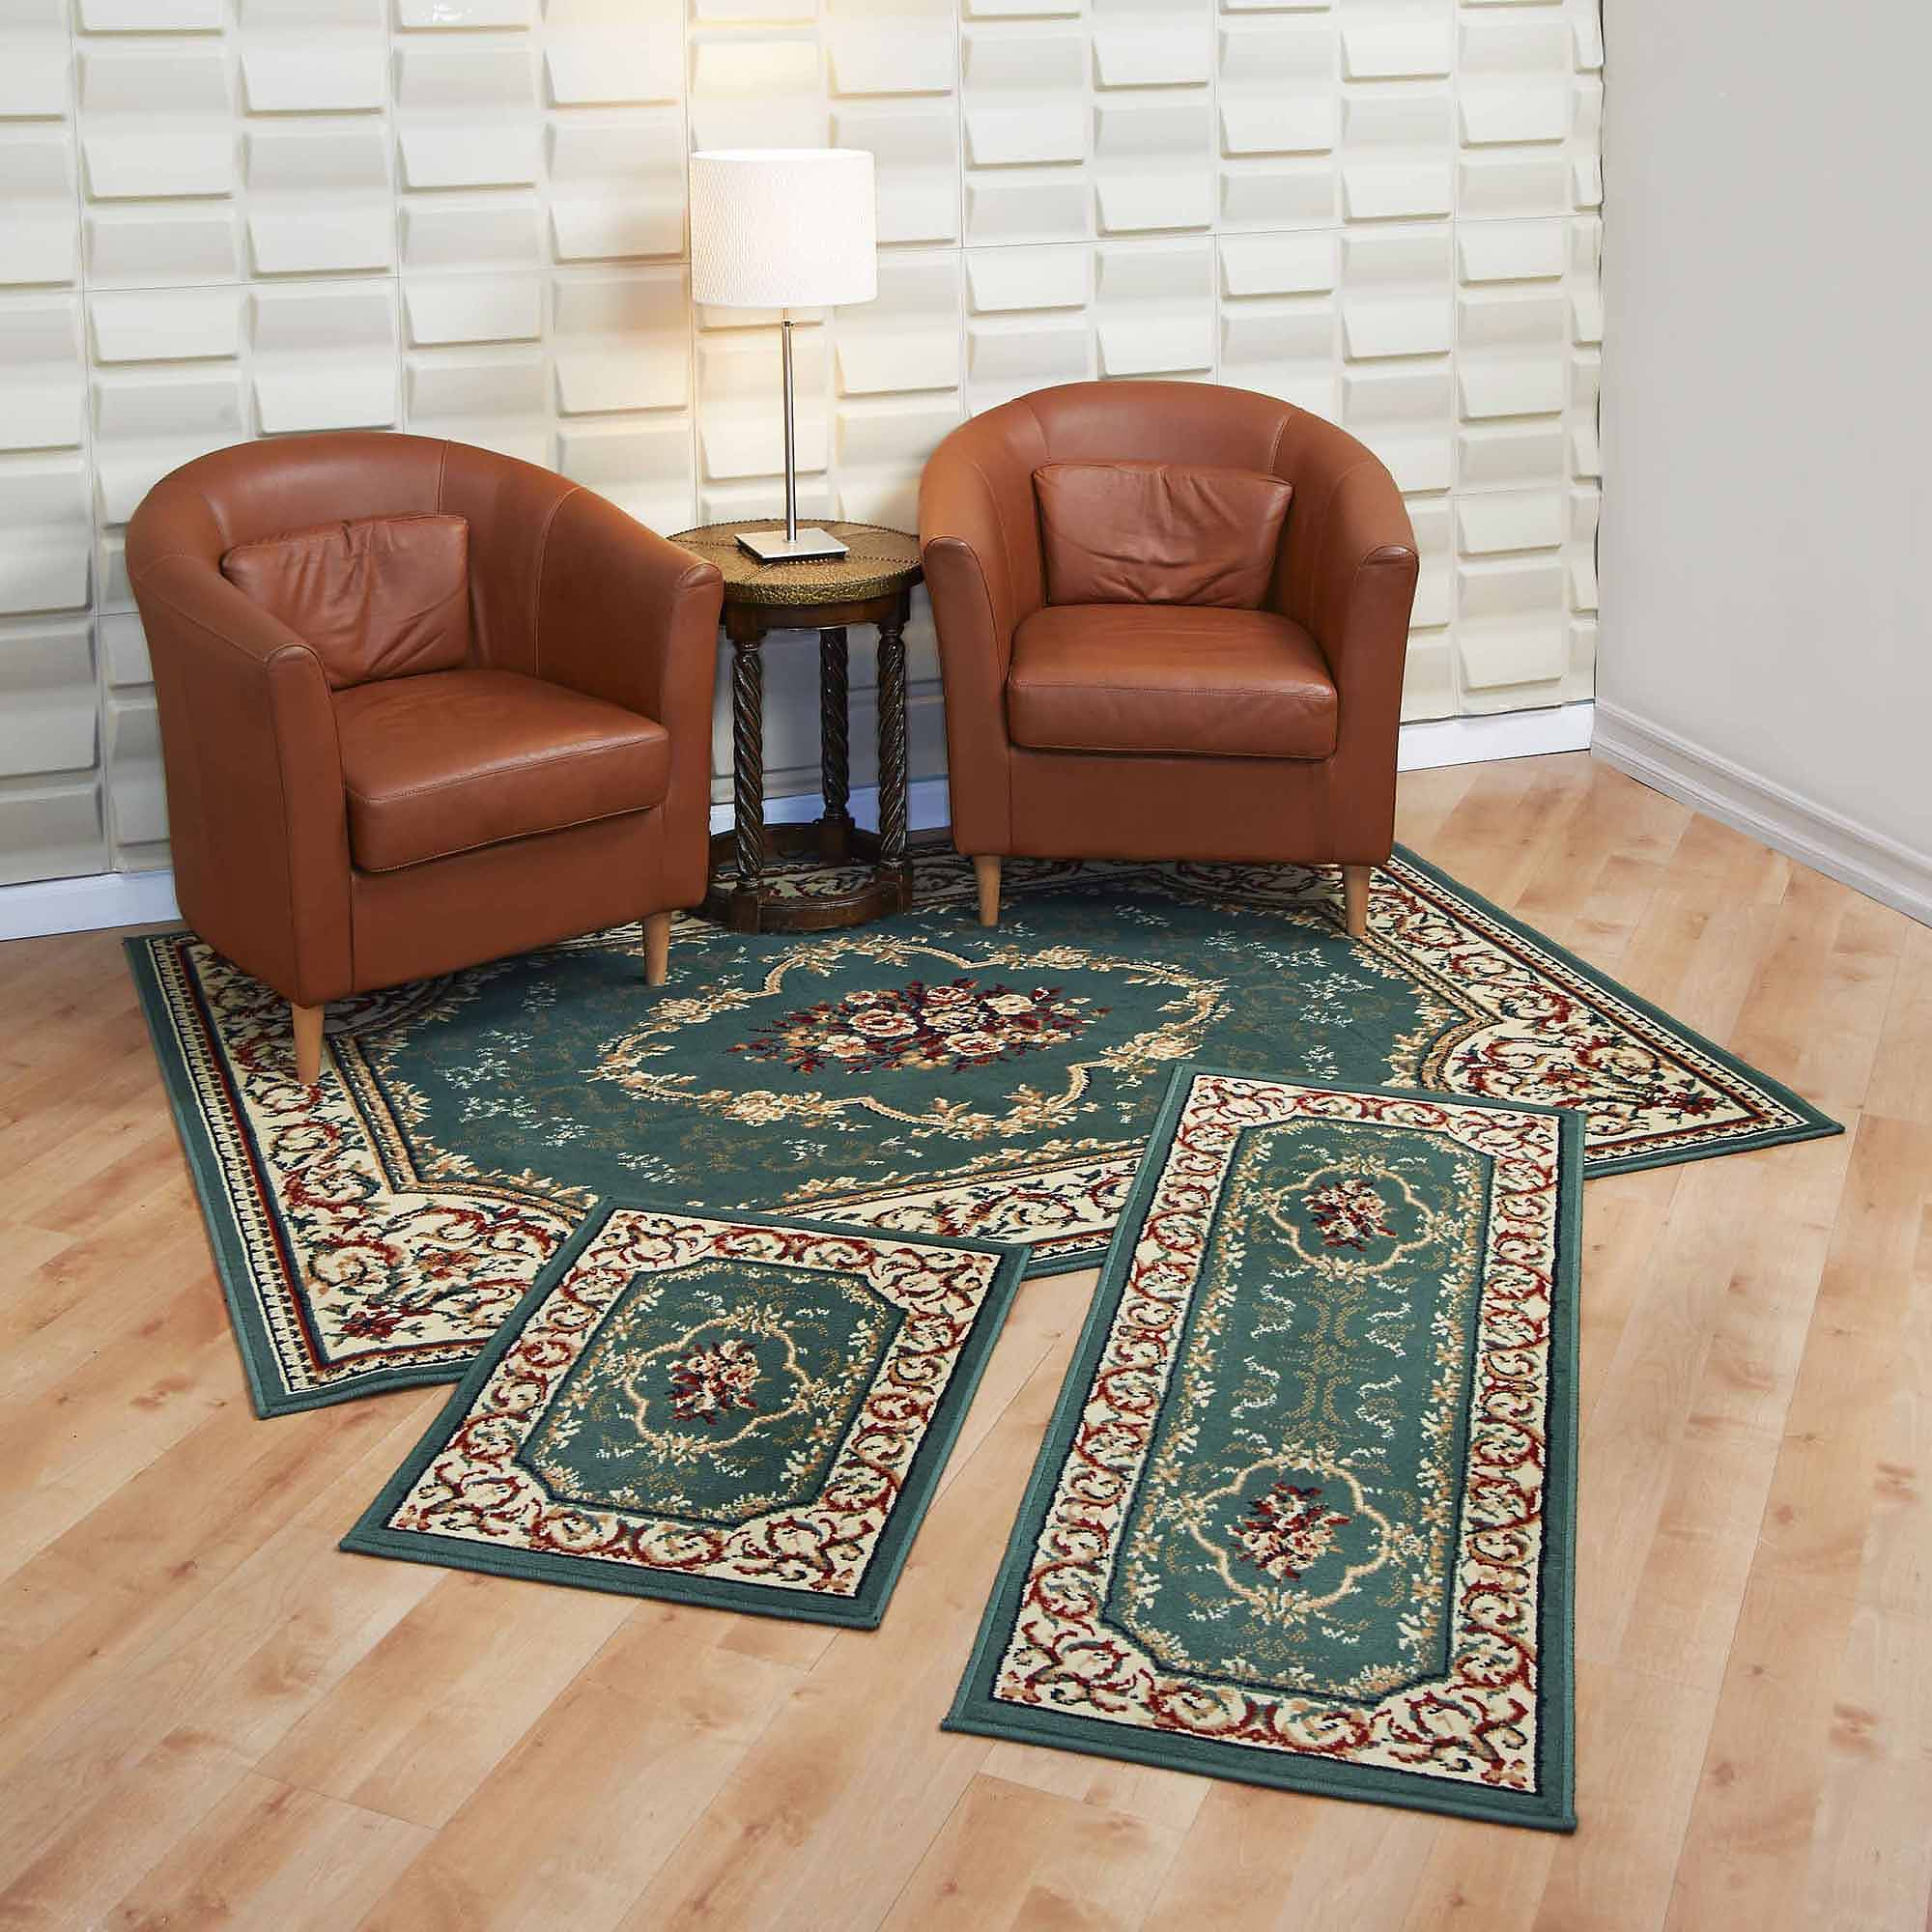 Area Rug Set 3 Pc Green Rose Garden Living Room Soft Pile